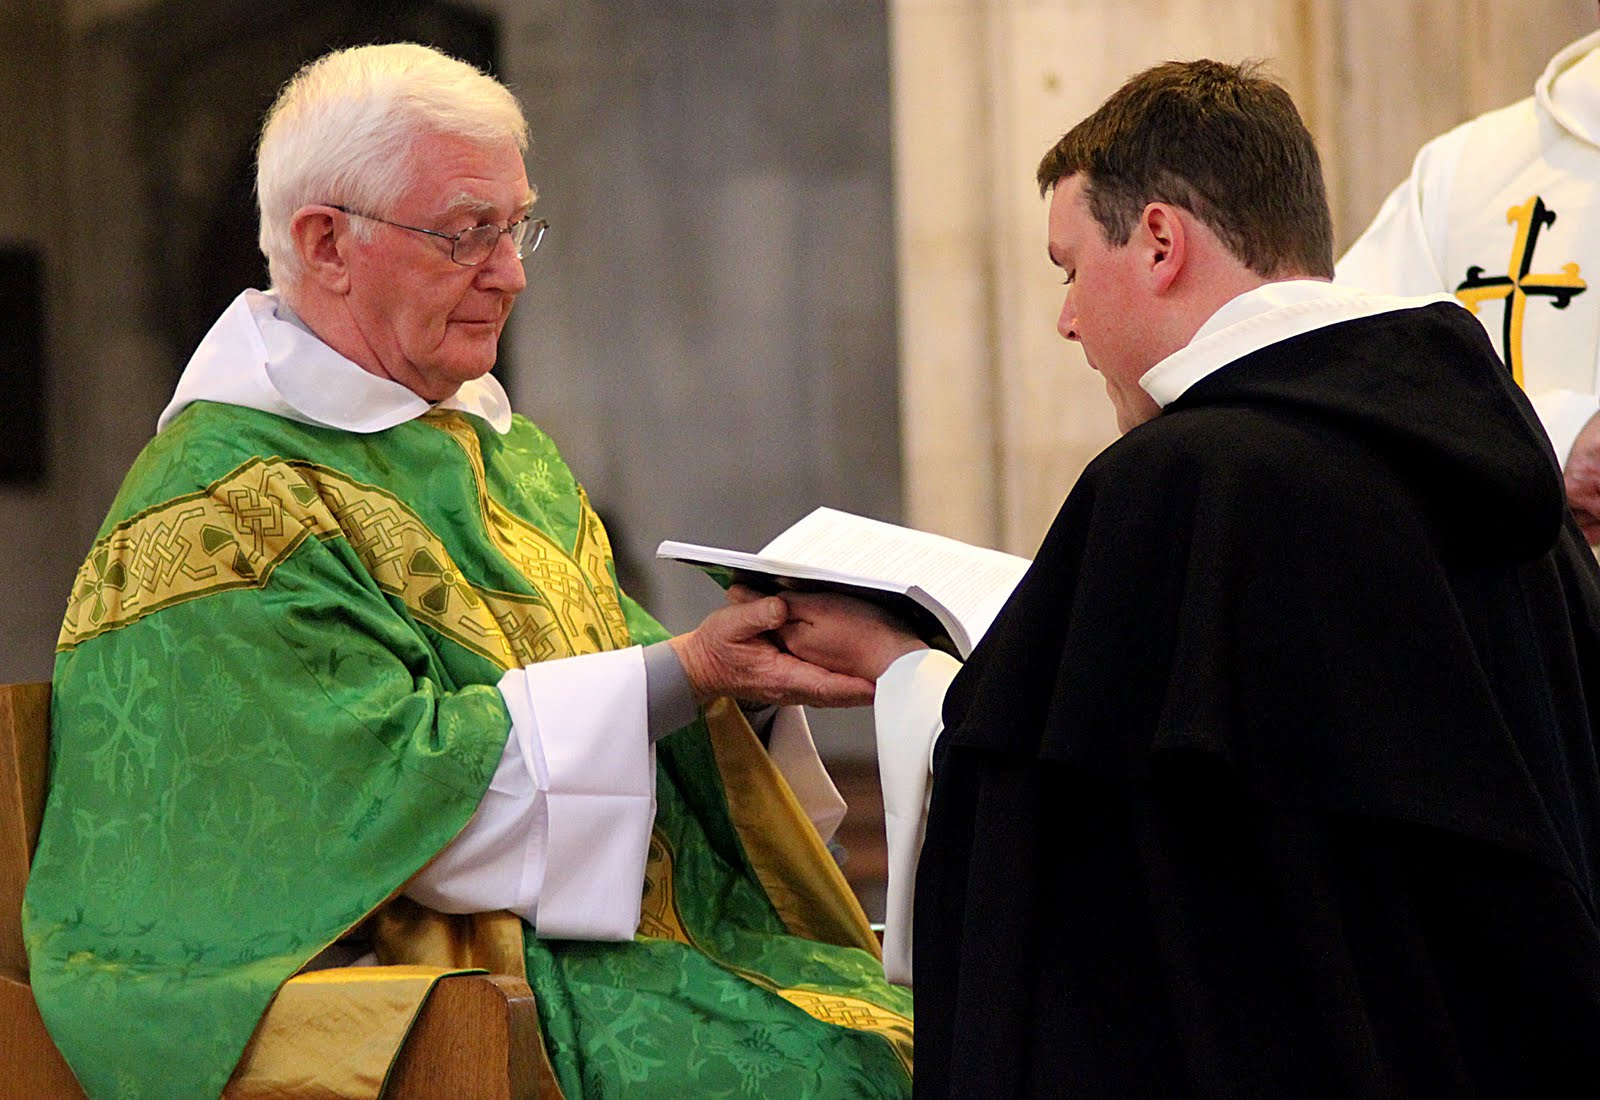 Solemn profession of colm mannion op and luuk jansen op